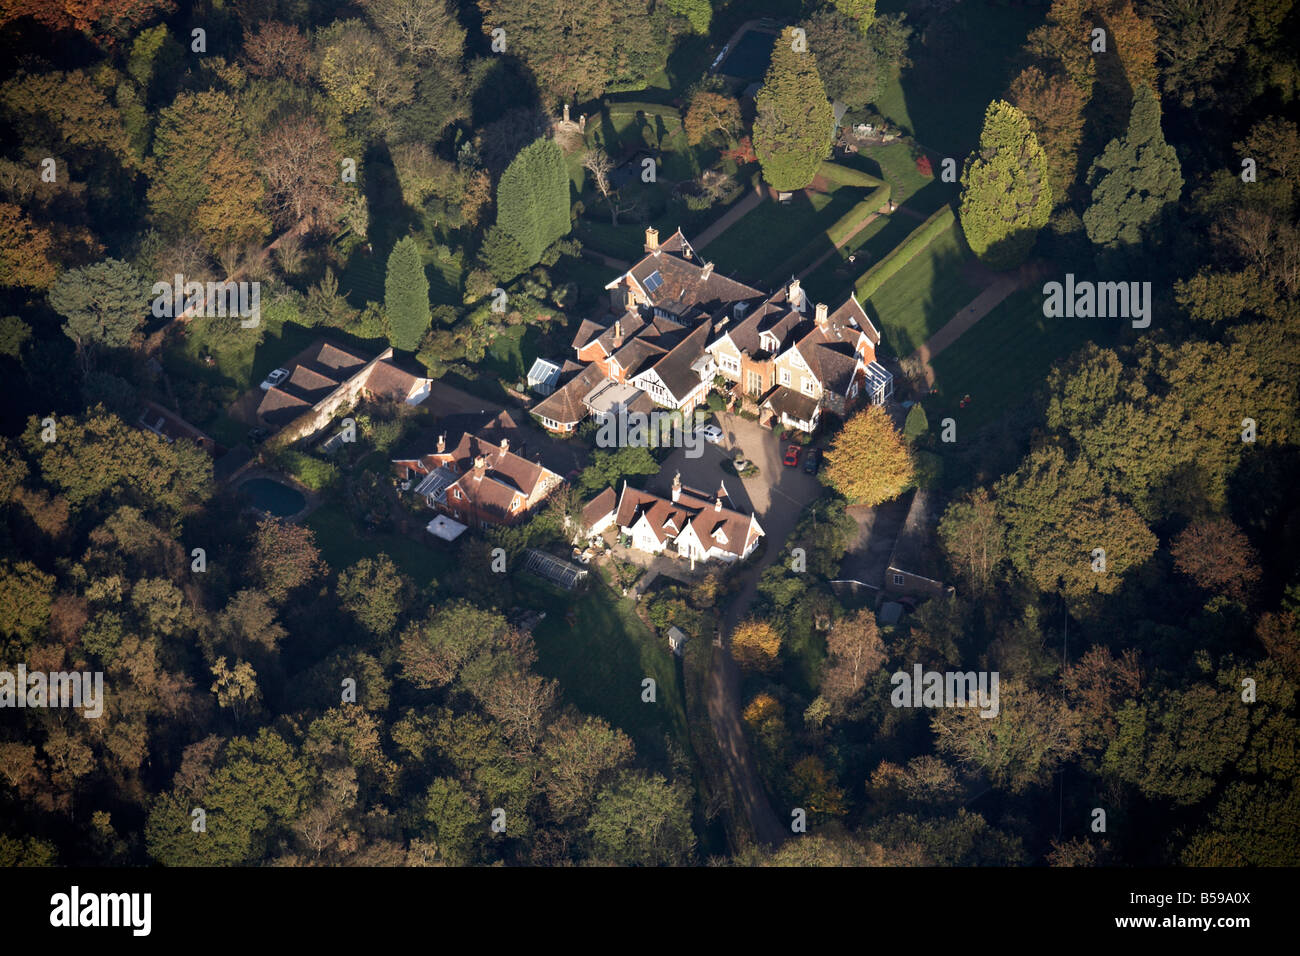 Aerial view east of country houses gardens trees Capel Surrey RH5 England UK - Stock Image